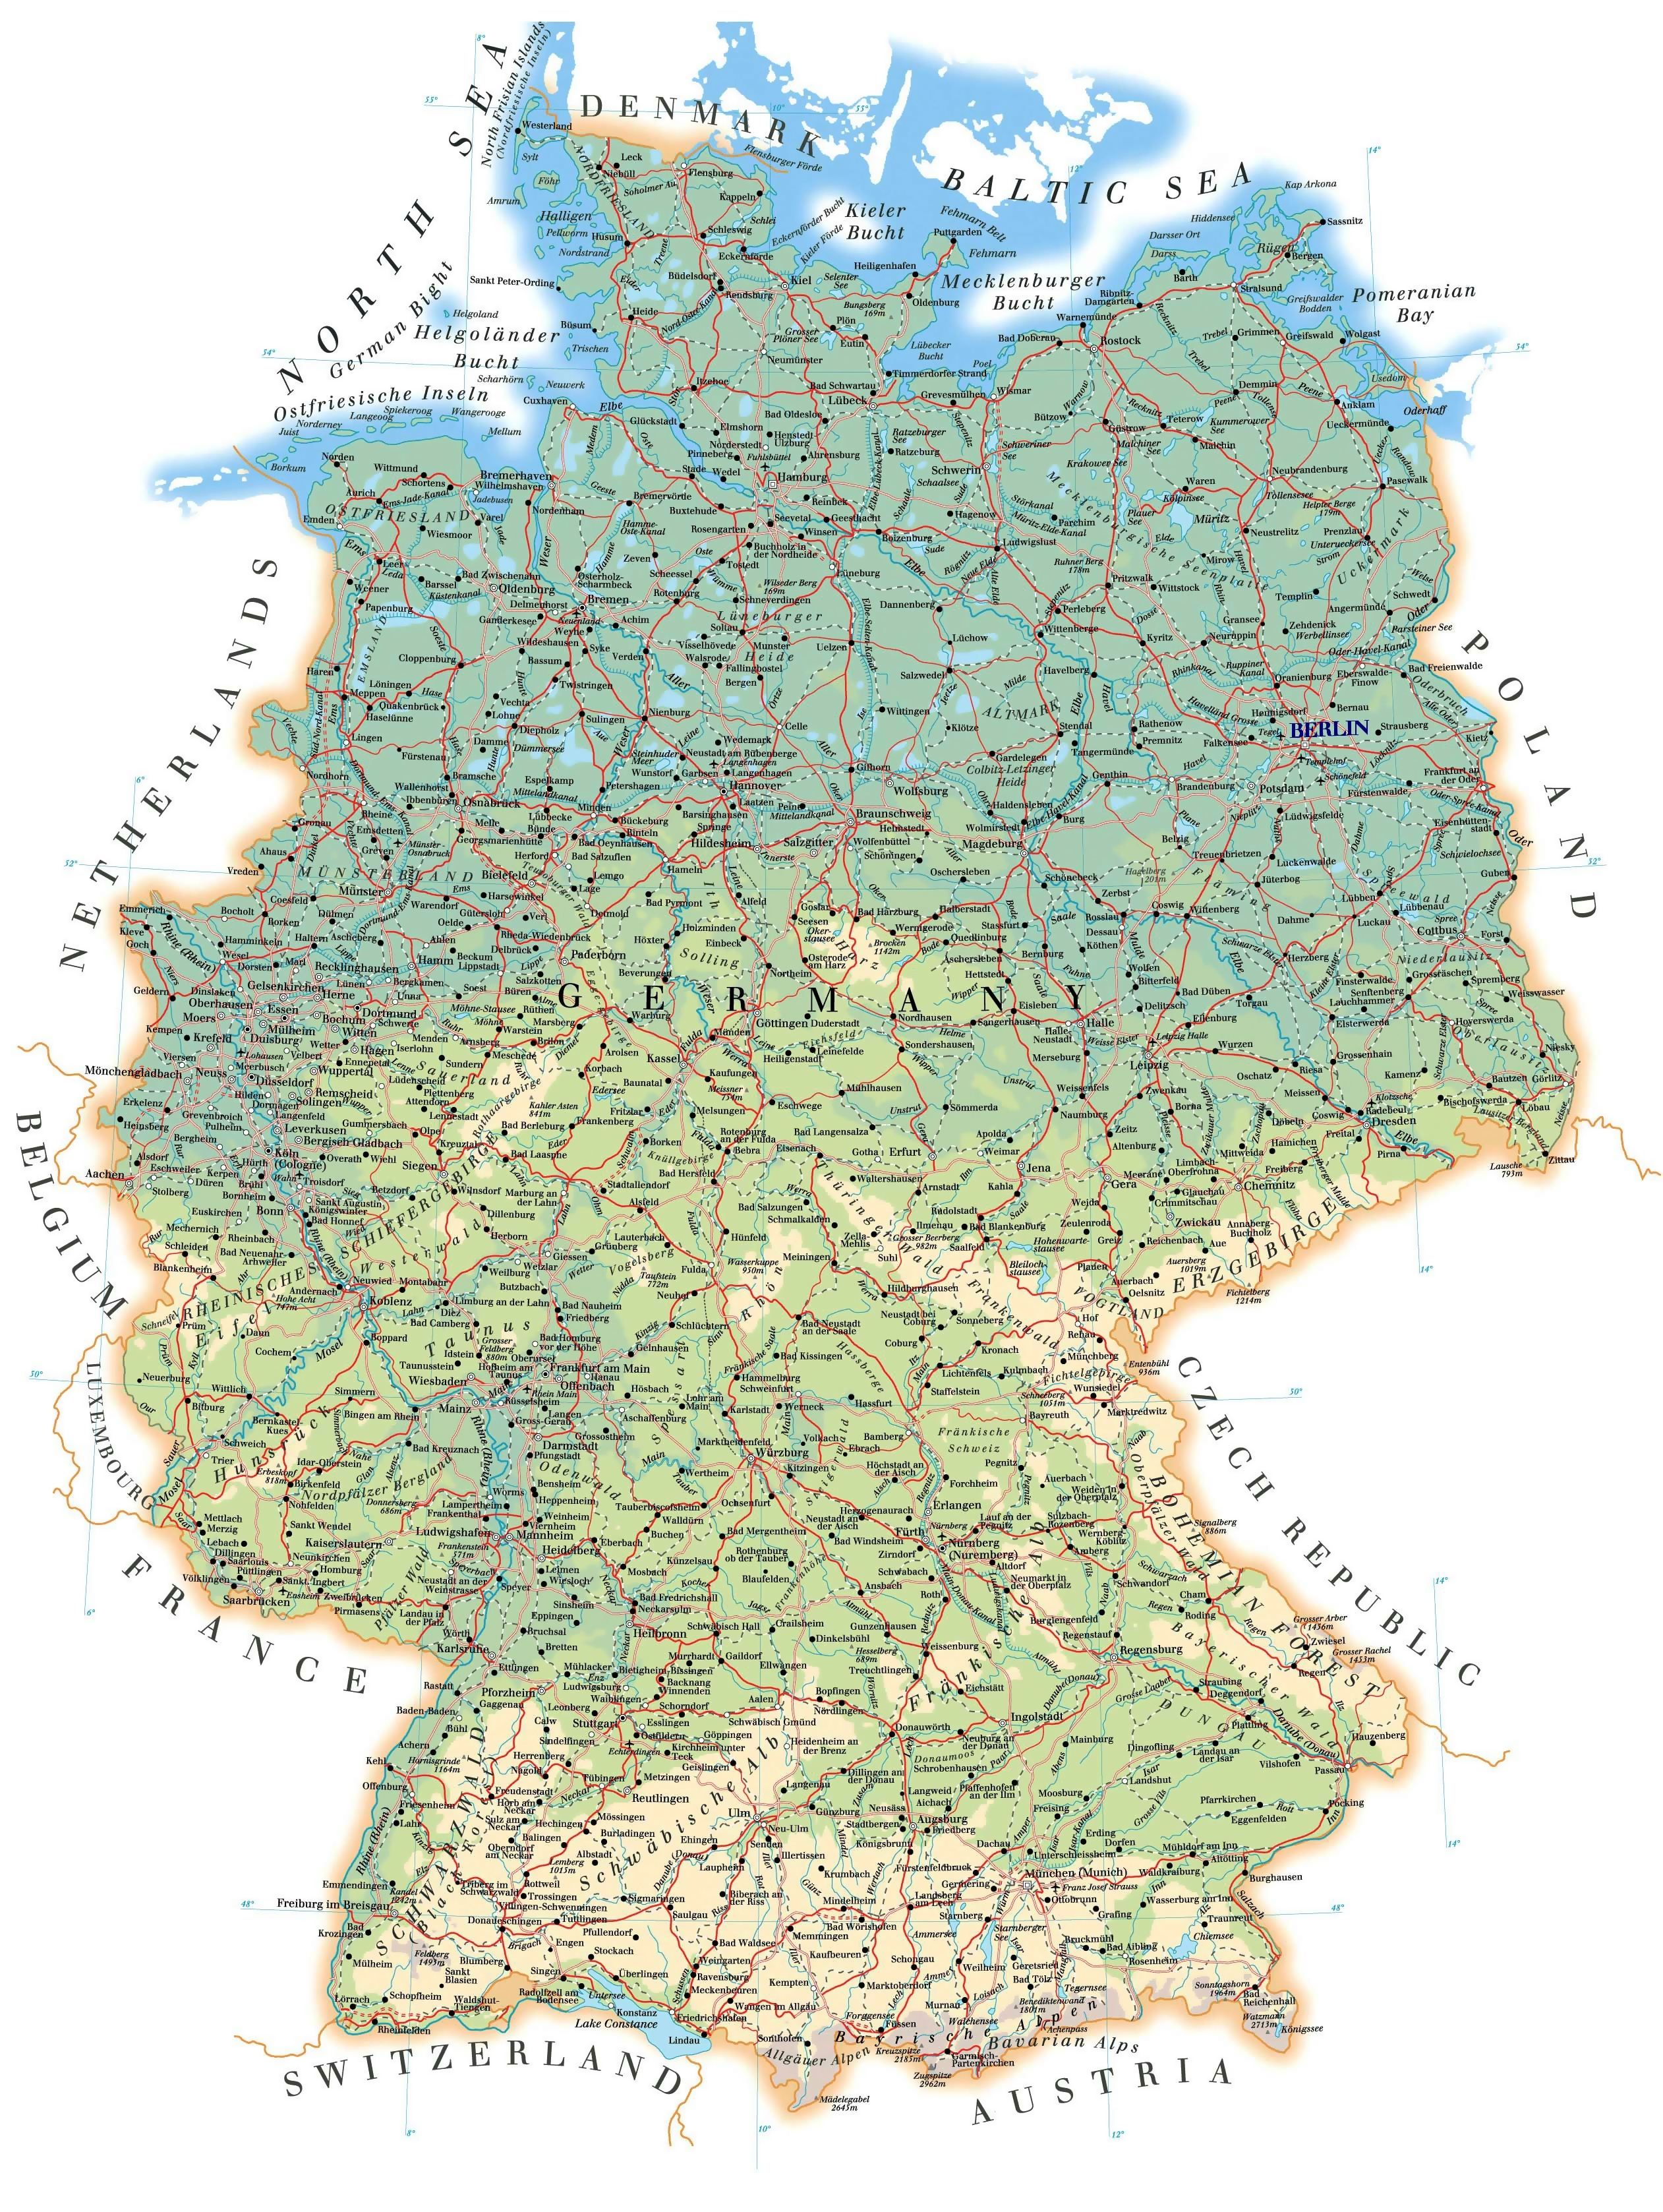 Large Detailed Elevation Map Of Germany With Roads, Cities And pertaining to Map Of Germany Airports And Cities